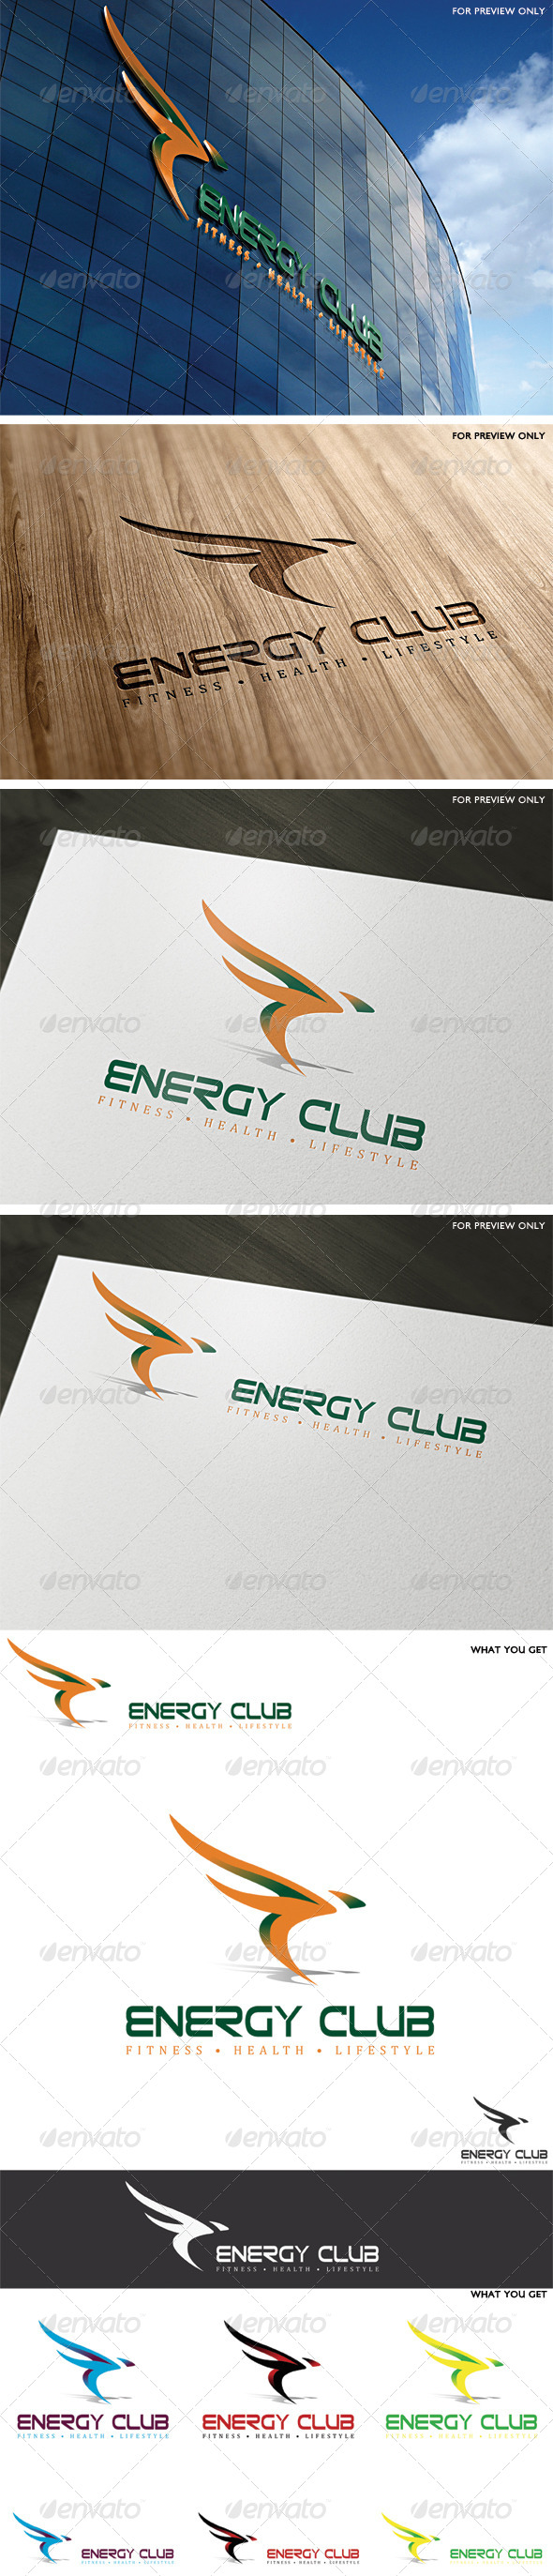 Energy Club Logo Template - Vector Abstract